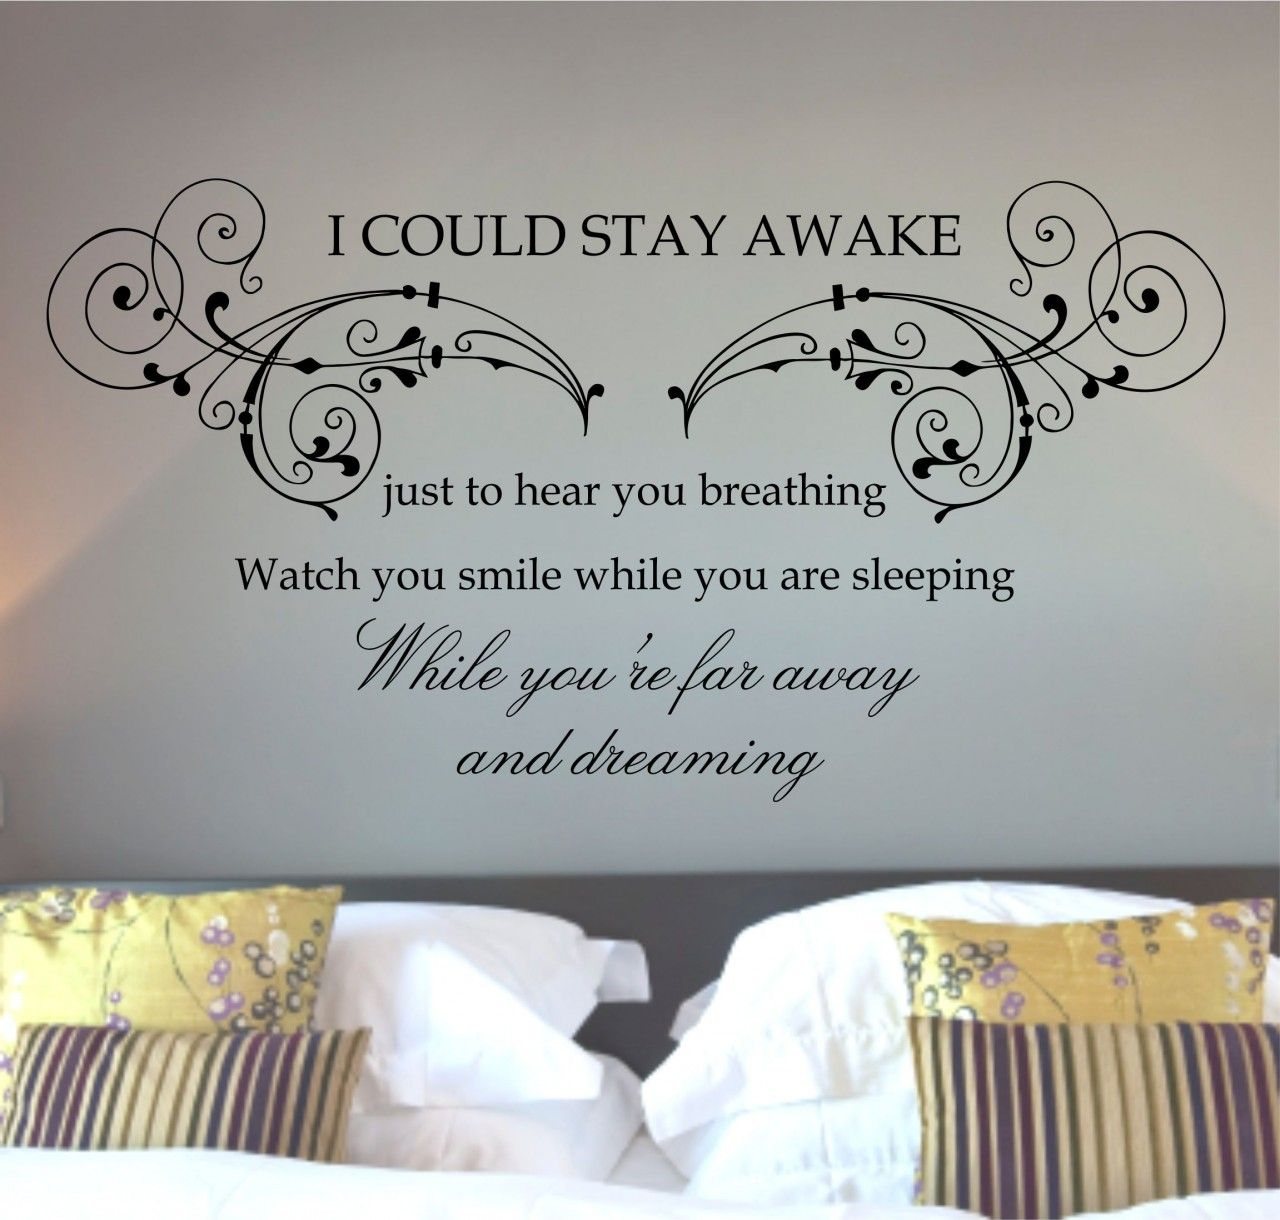 Wall quotes images buy aerosmith quote wall art sticker decal wall quotes images buy aerosmith quote wall art sticker decal mural fabulous stickers amipublicfo Image collections